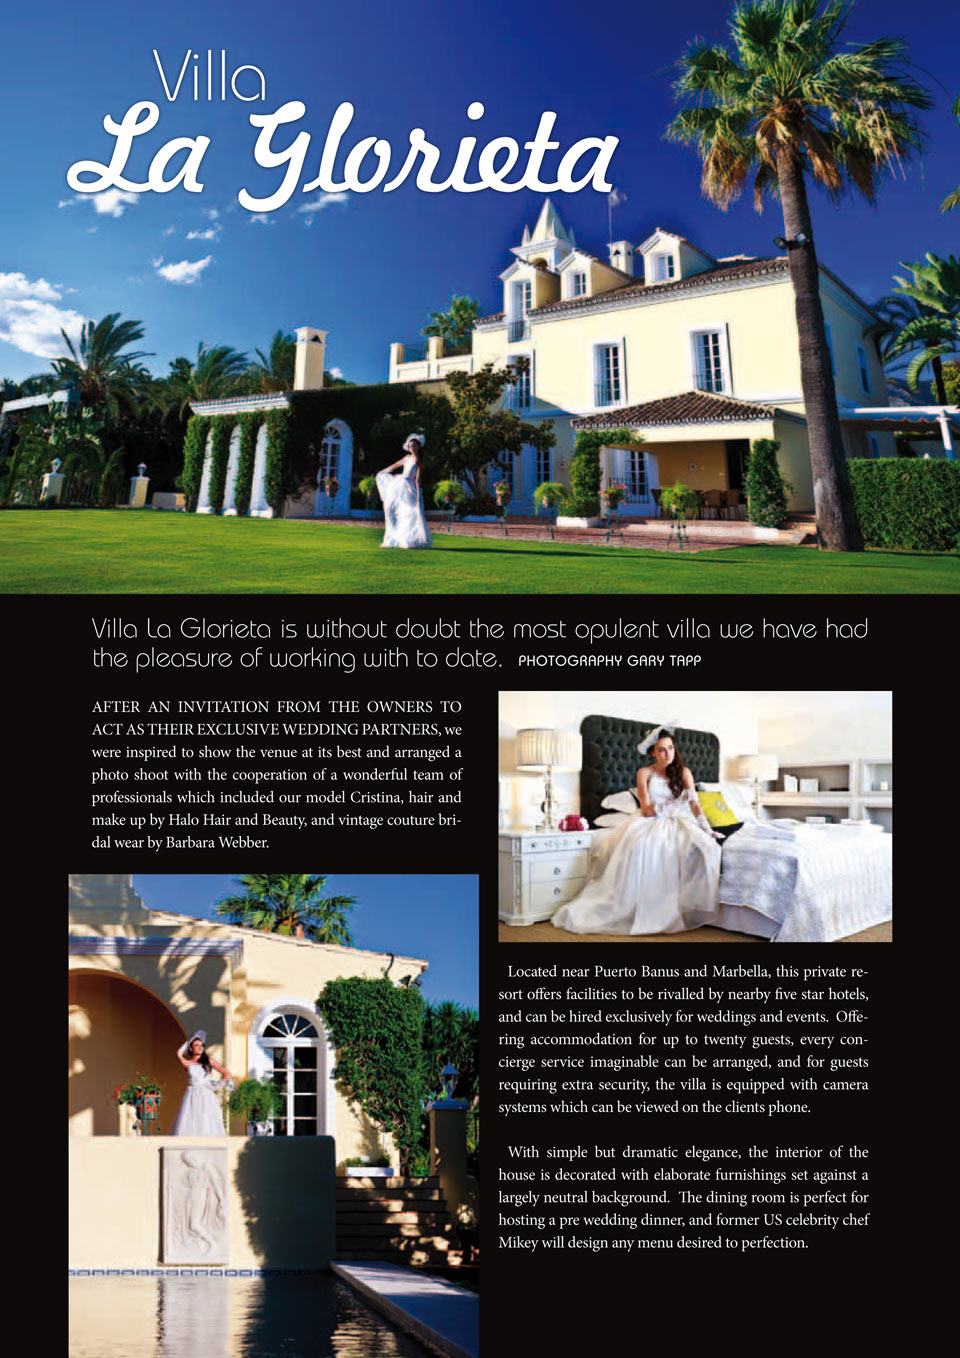 Spains Wedding Guide - Autumn 2011